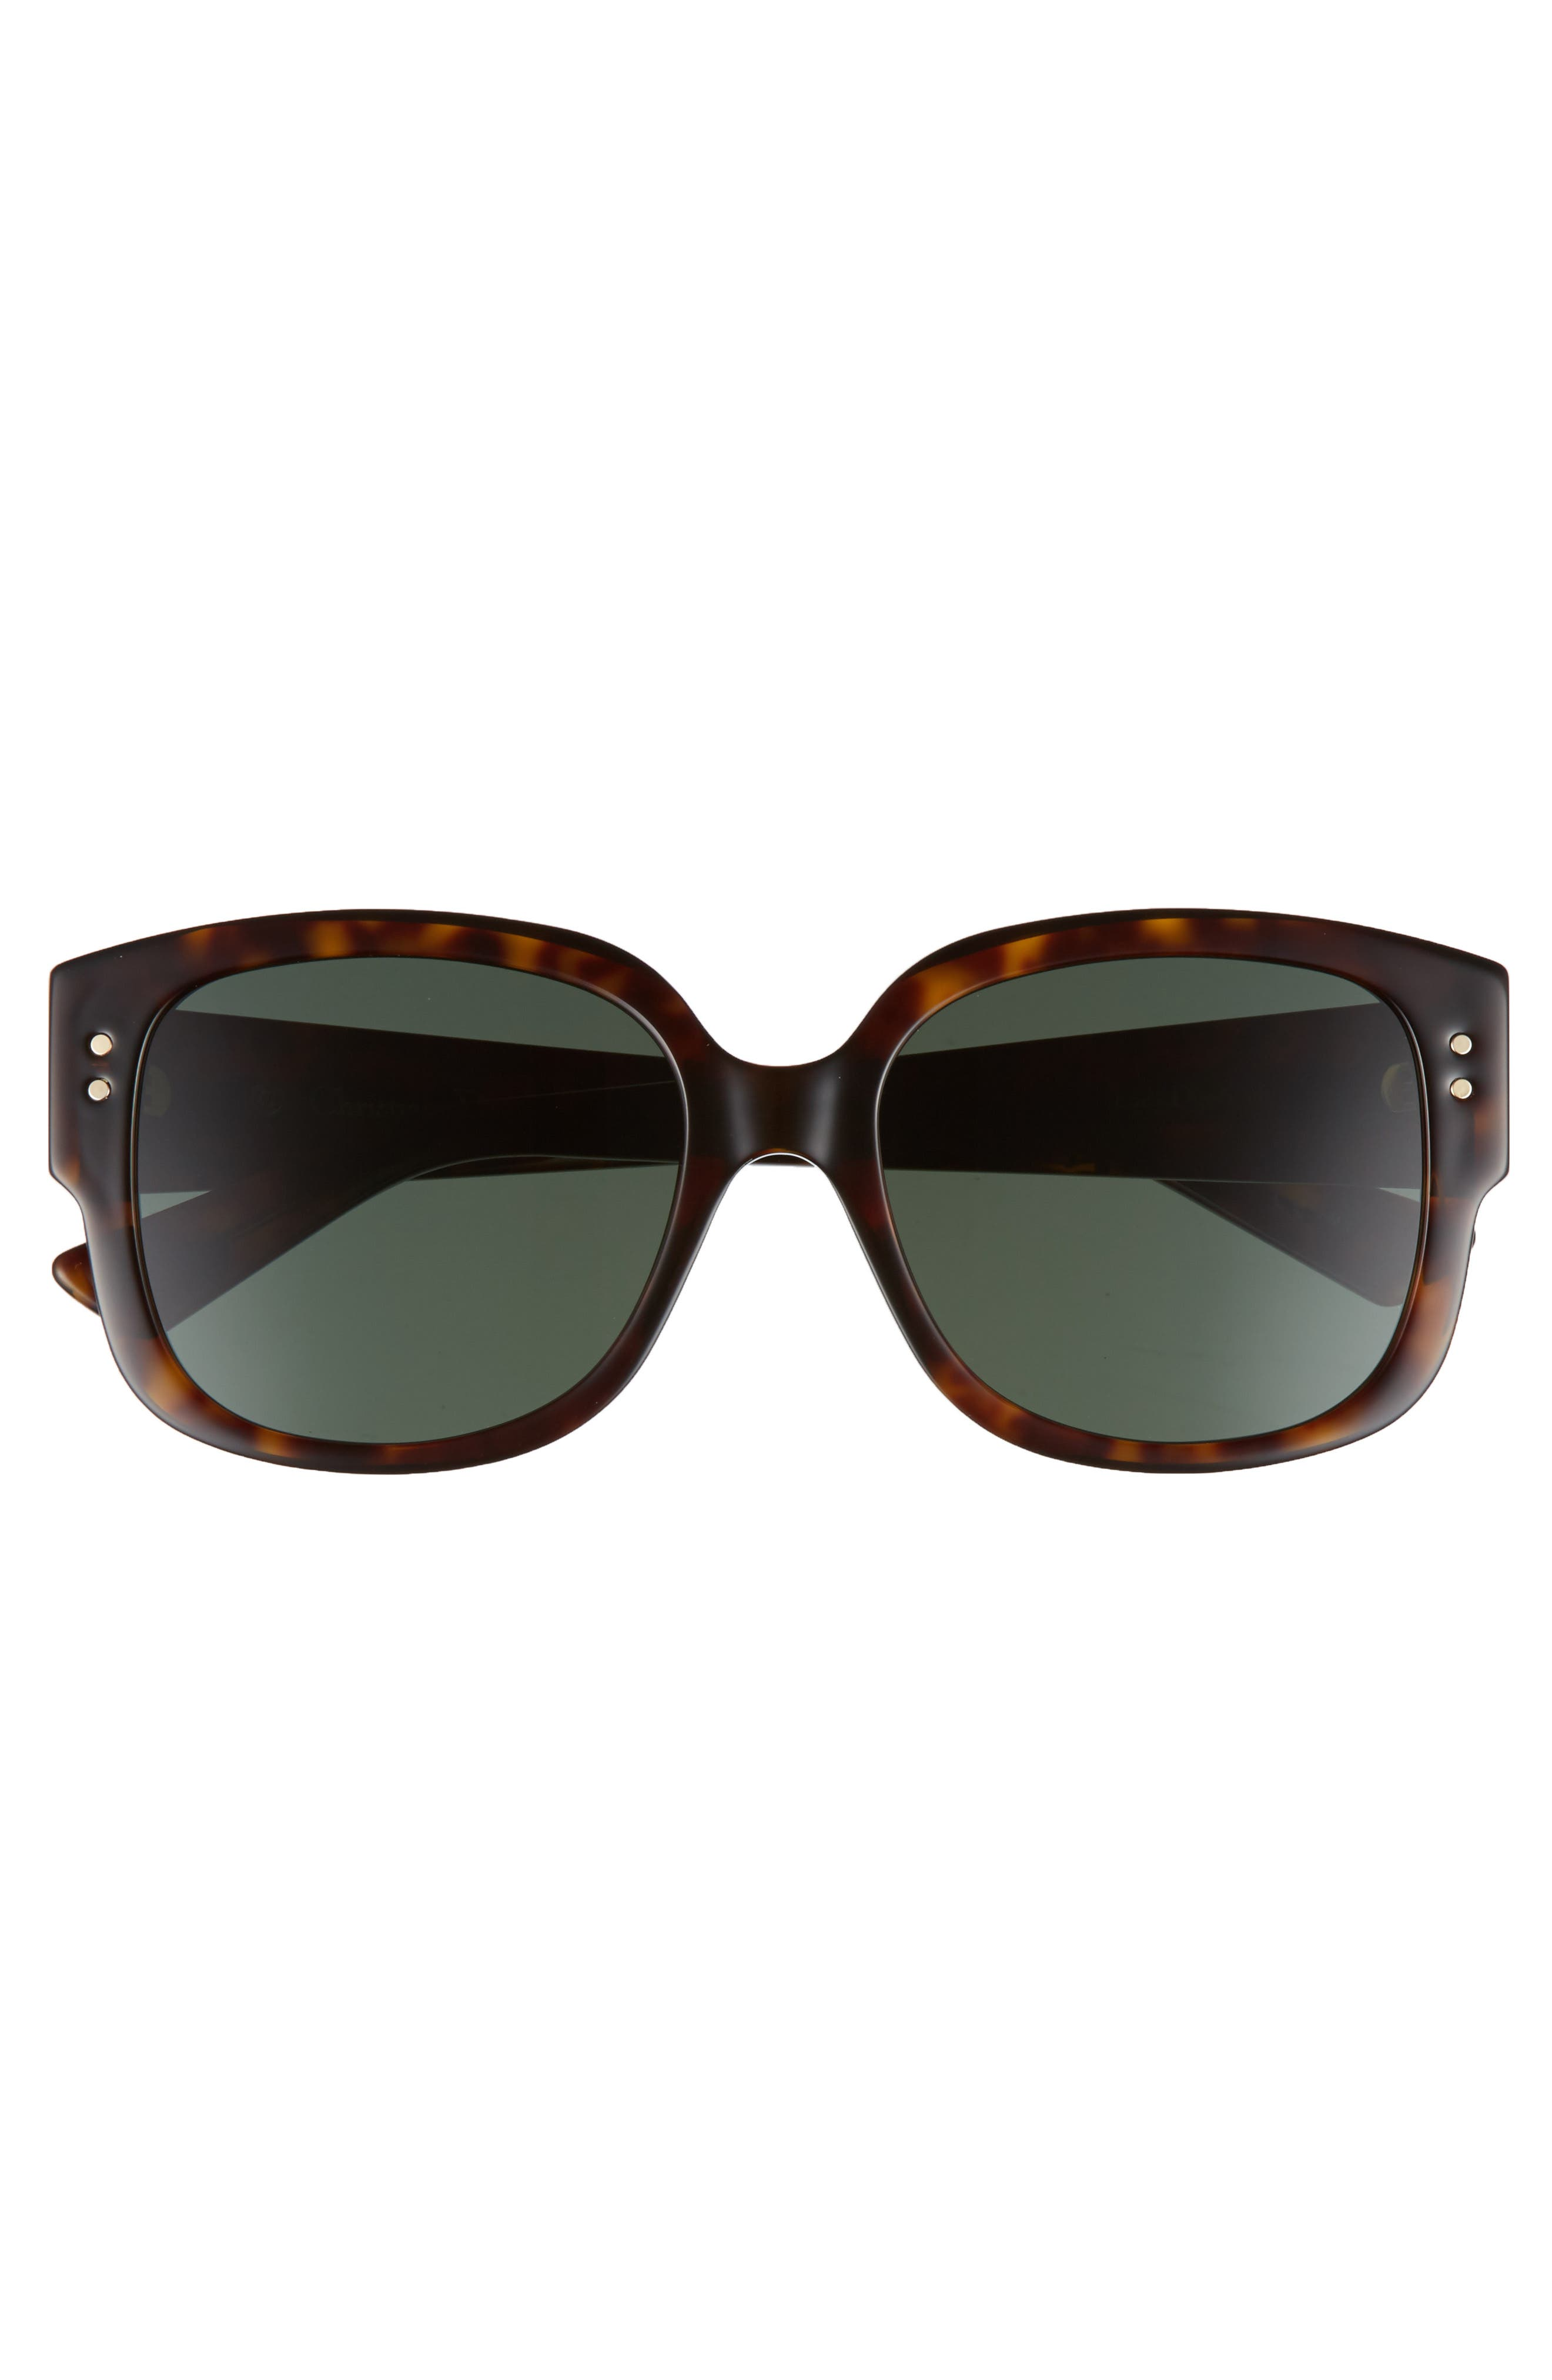 Square 54mm Sunglasses,                             Alternate thumbnail 3, color,                             Dark Havana